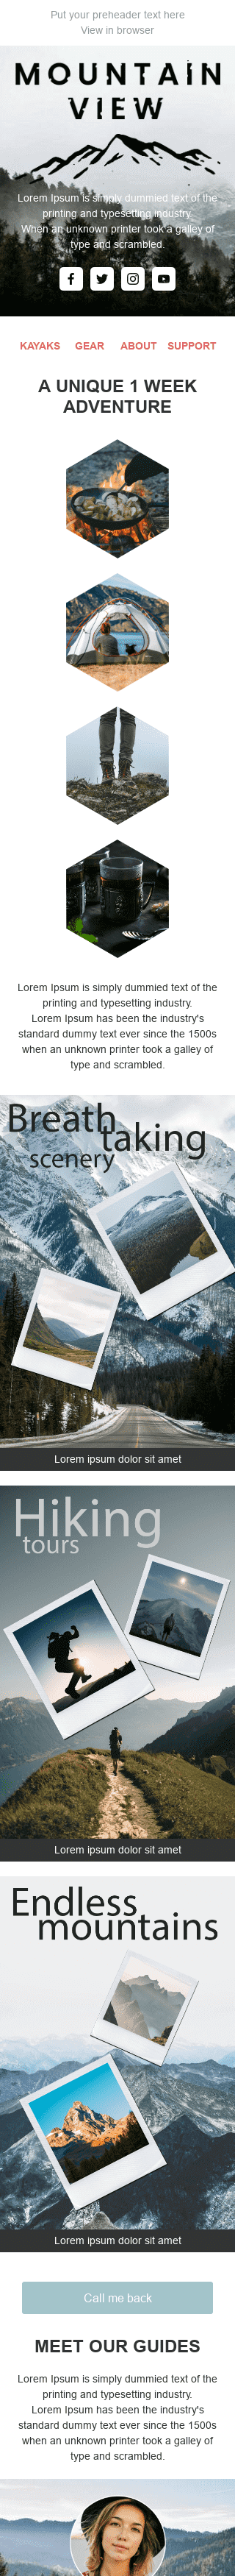 Promo Email Template «Mountain View» for Tourism industry mobile view